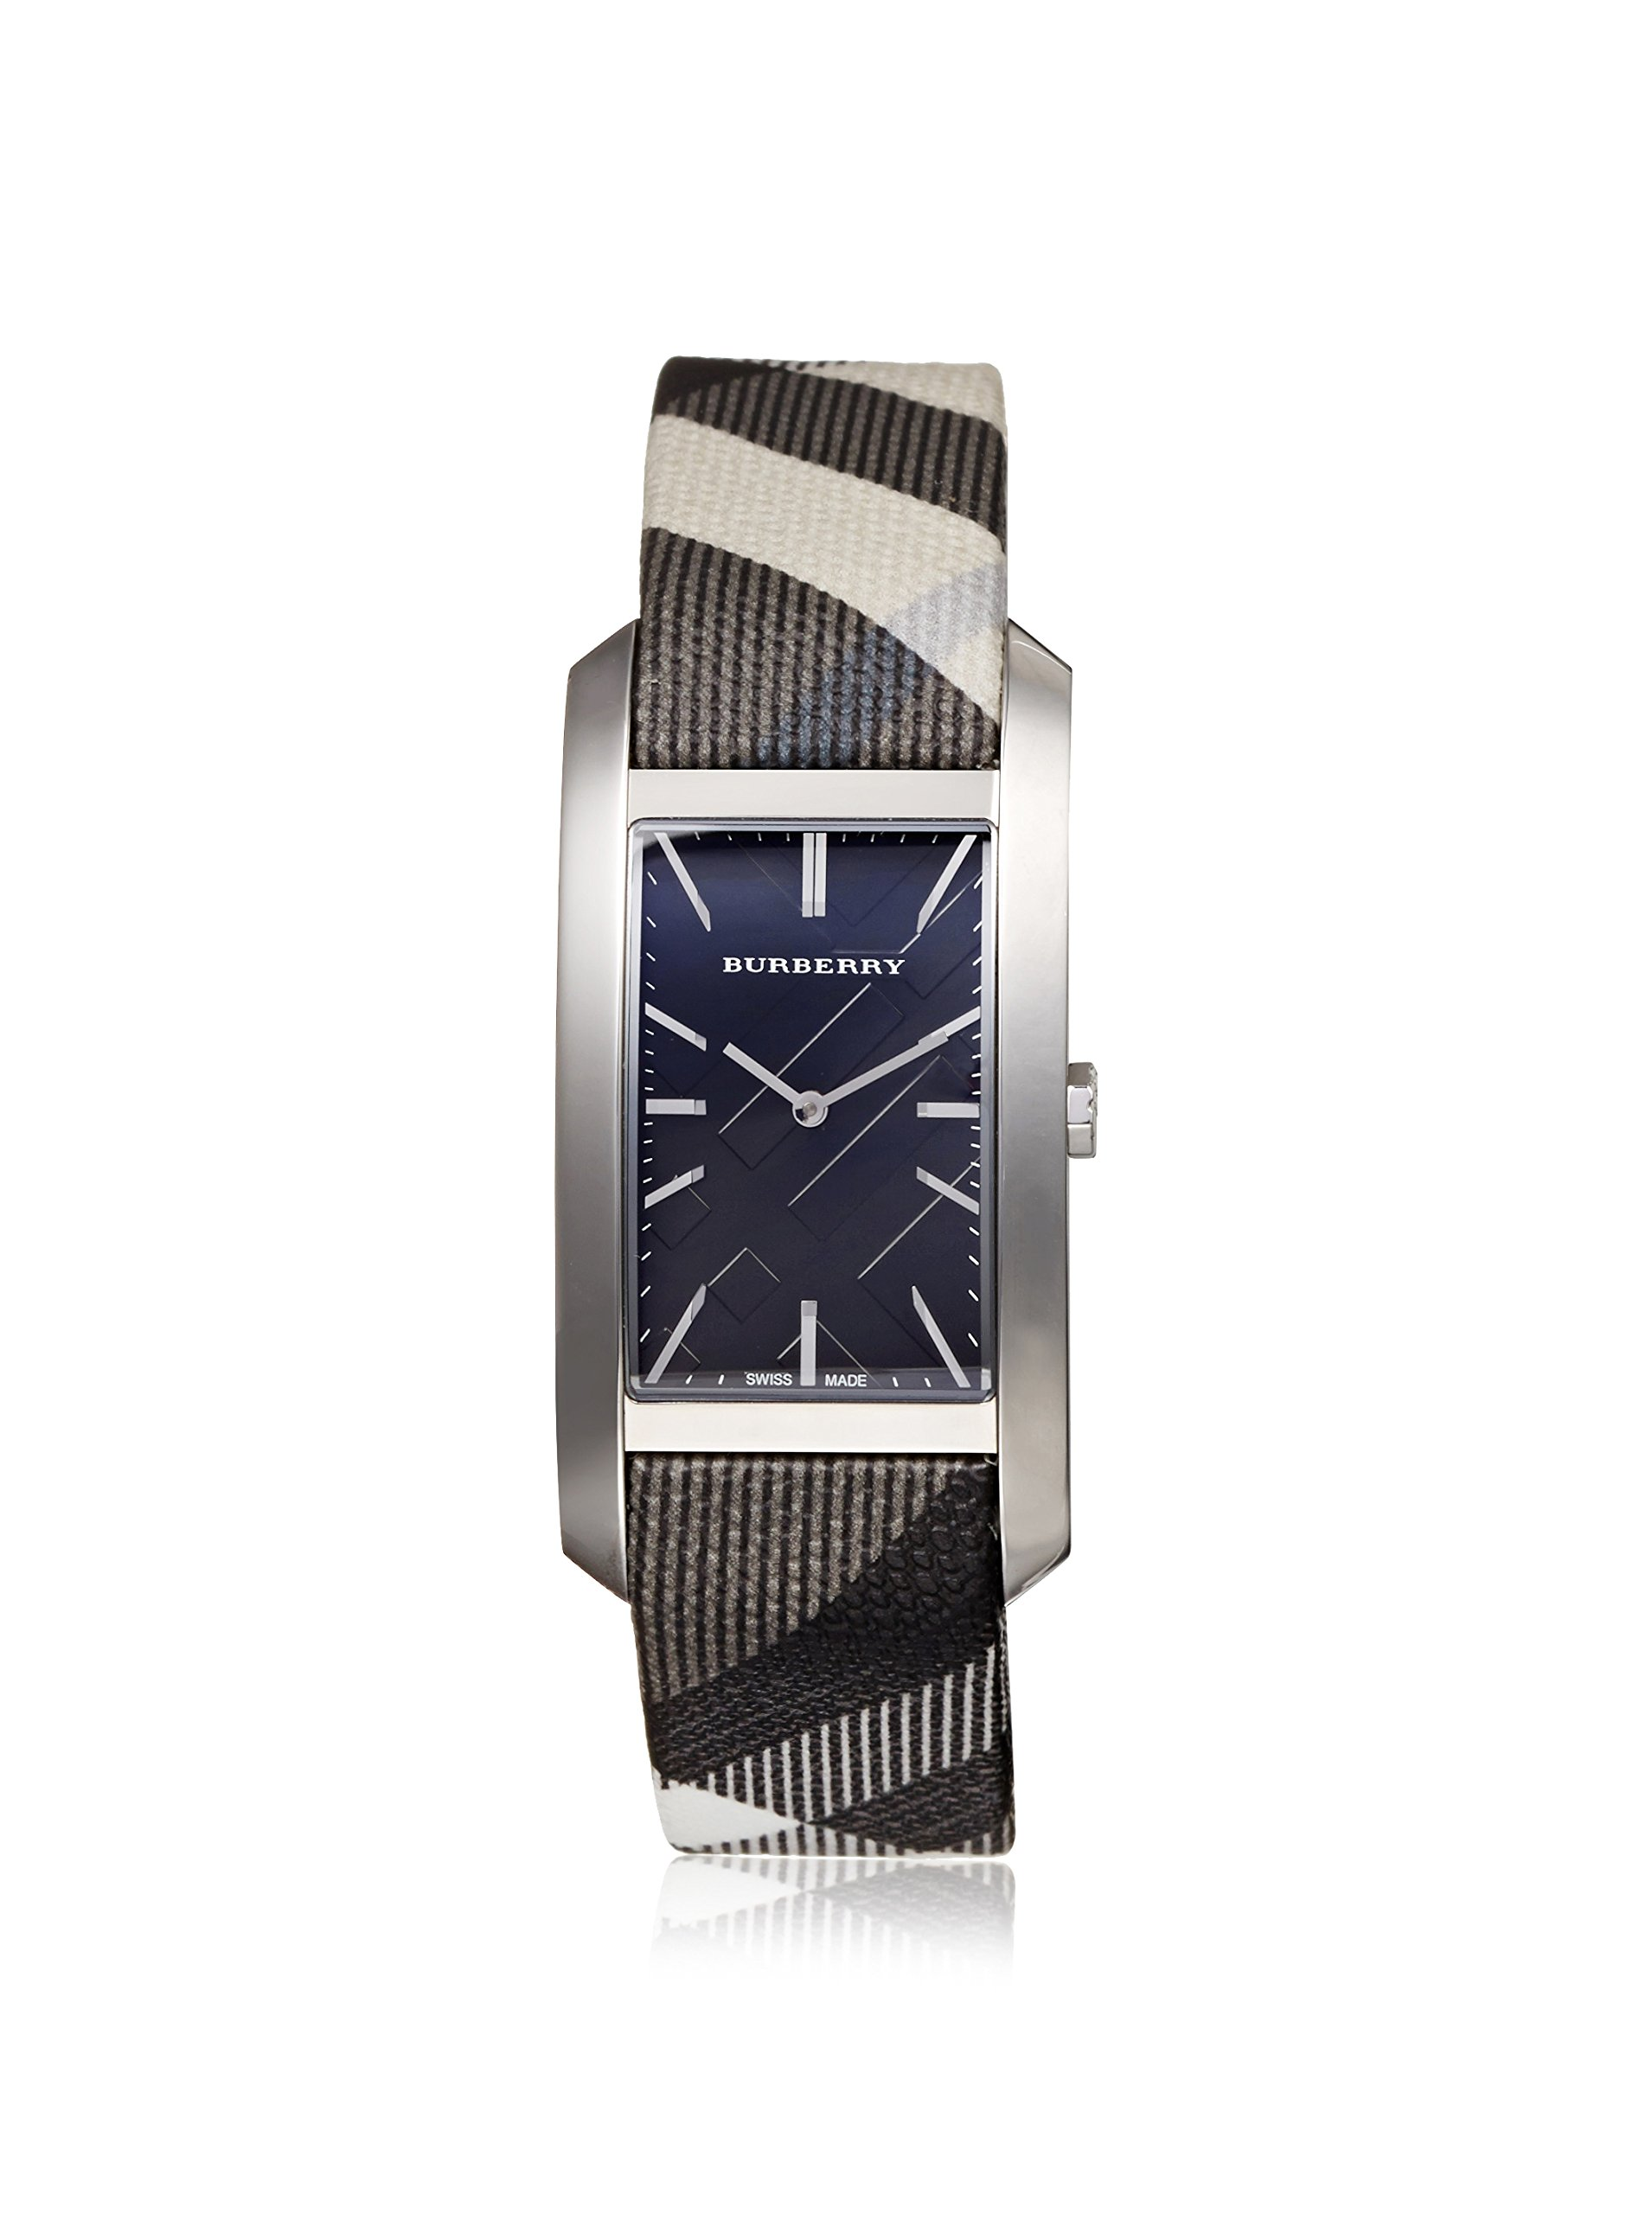 Burberry Women's Black/White Heritage Check Leather Strap Black Dial Rectangular Watch BU9405